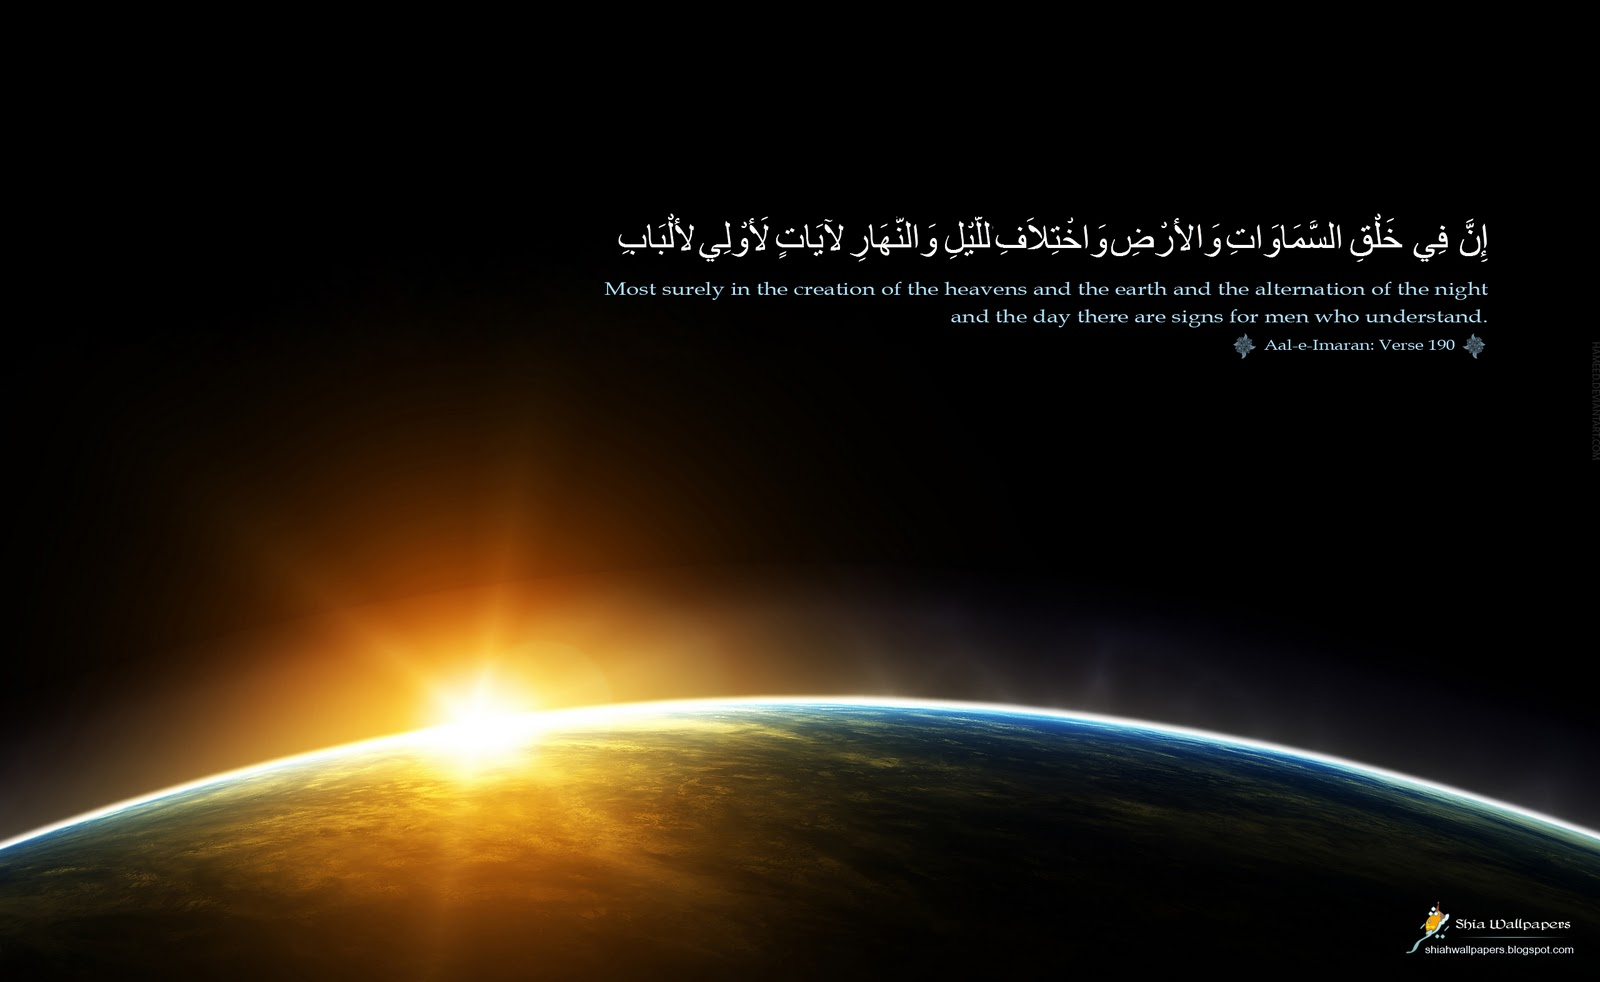 Shia Wallpapers Signs of Allah swt 1600x982